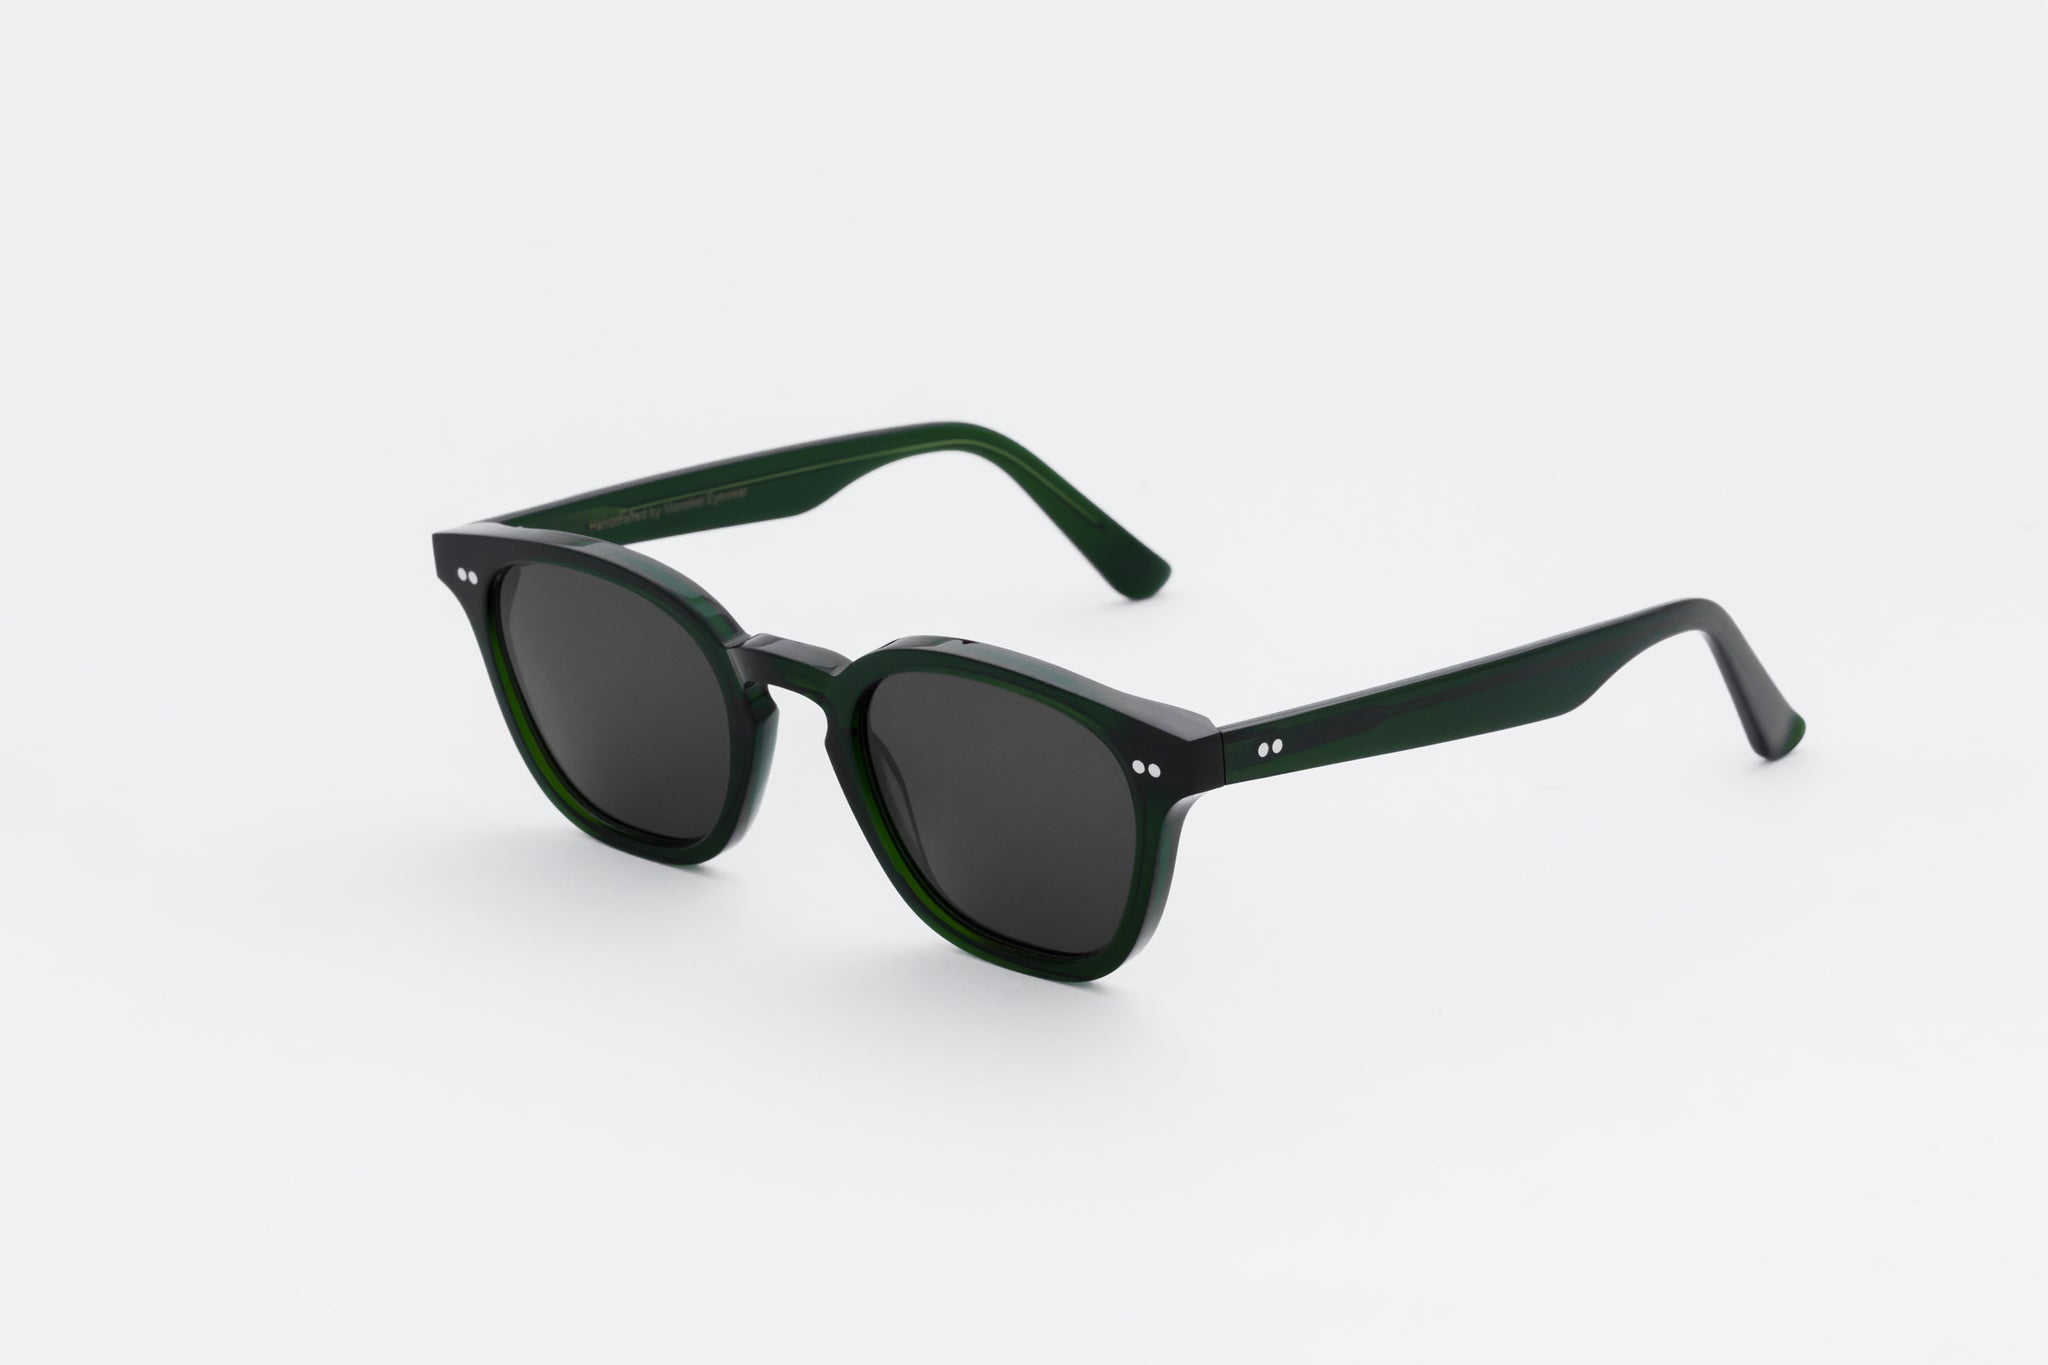 monokel eyewear sunglasses river bottle green / grey solid lens